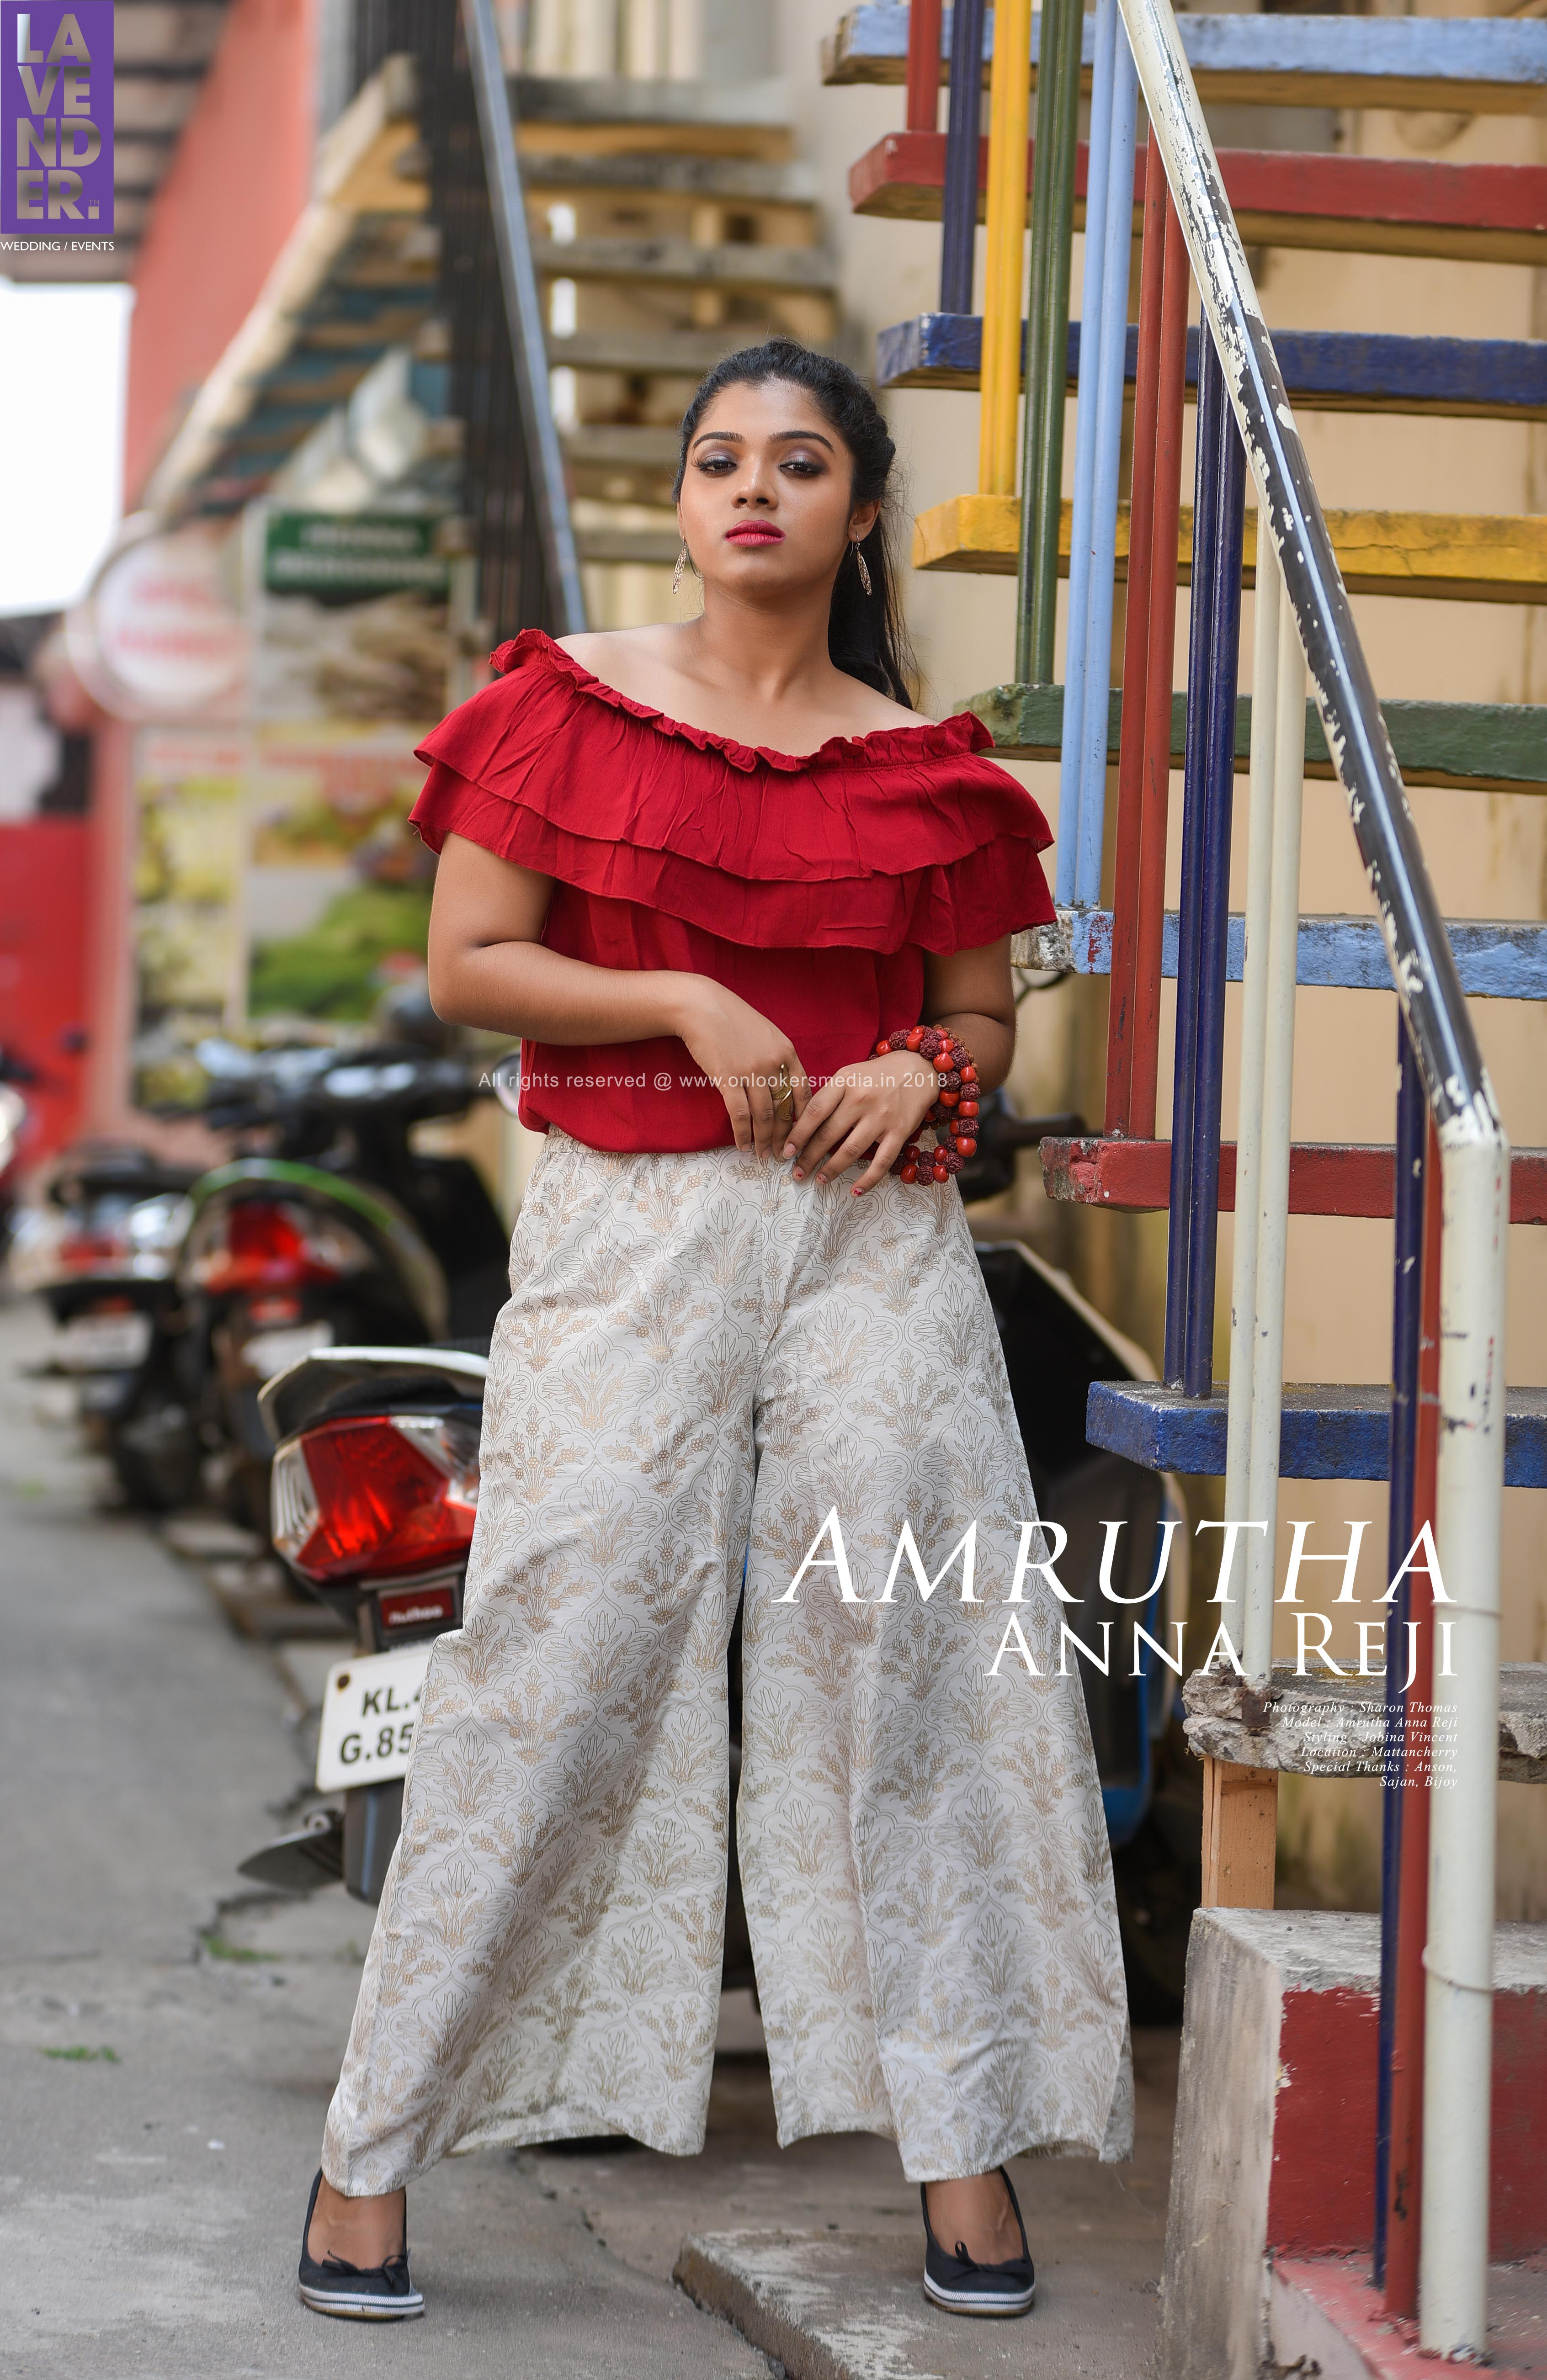 http://onlookersmedia.in/wp-content/uploads/2018/03/amrutha-anna-reji-make-over-stills-images-photos-13.jpg